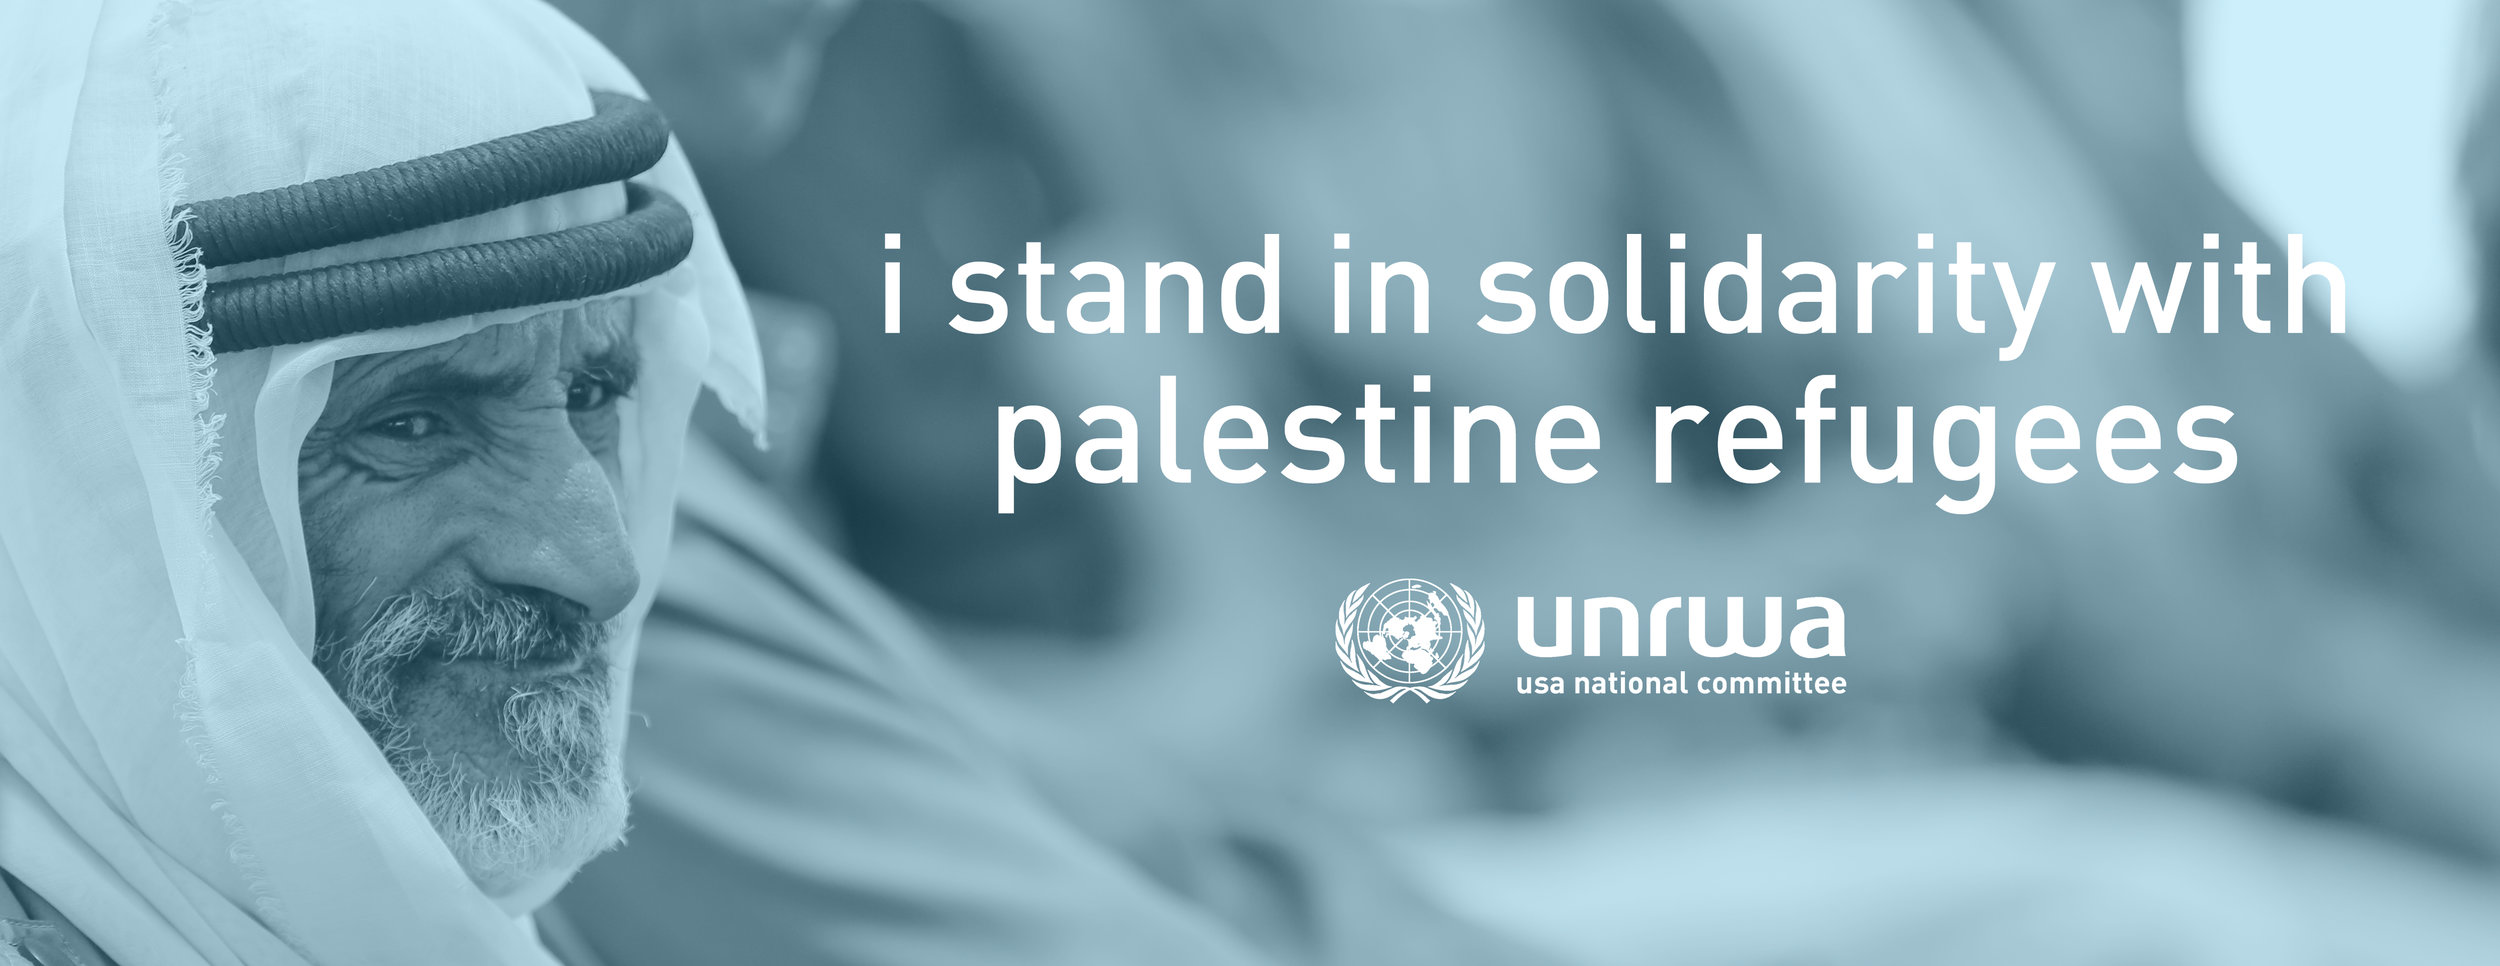 Join the movement. Show Palestine refugees that you care. unrwausa.org